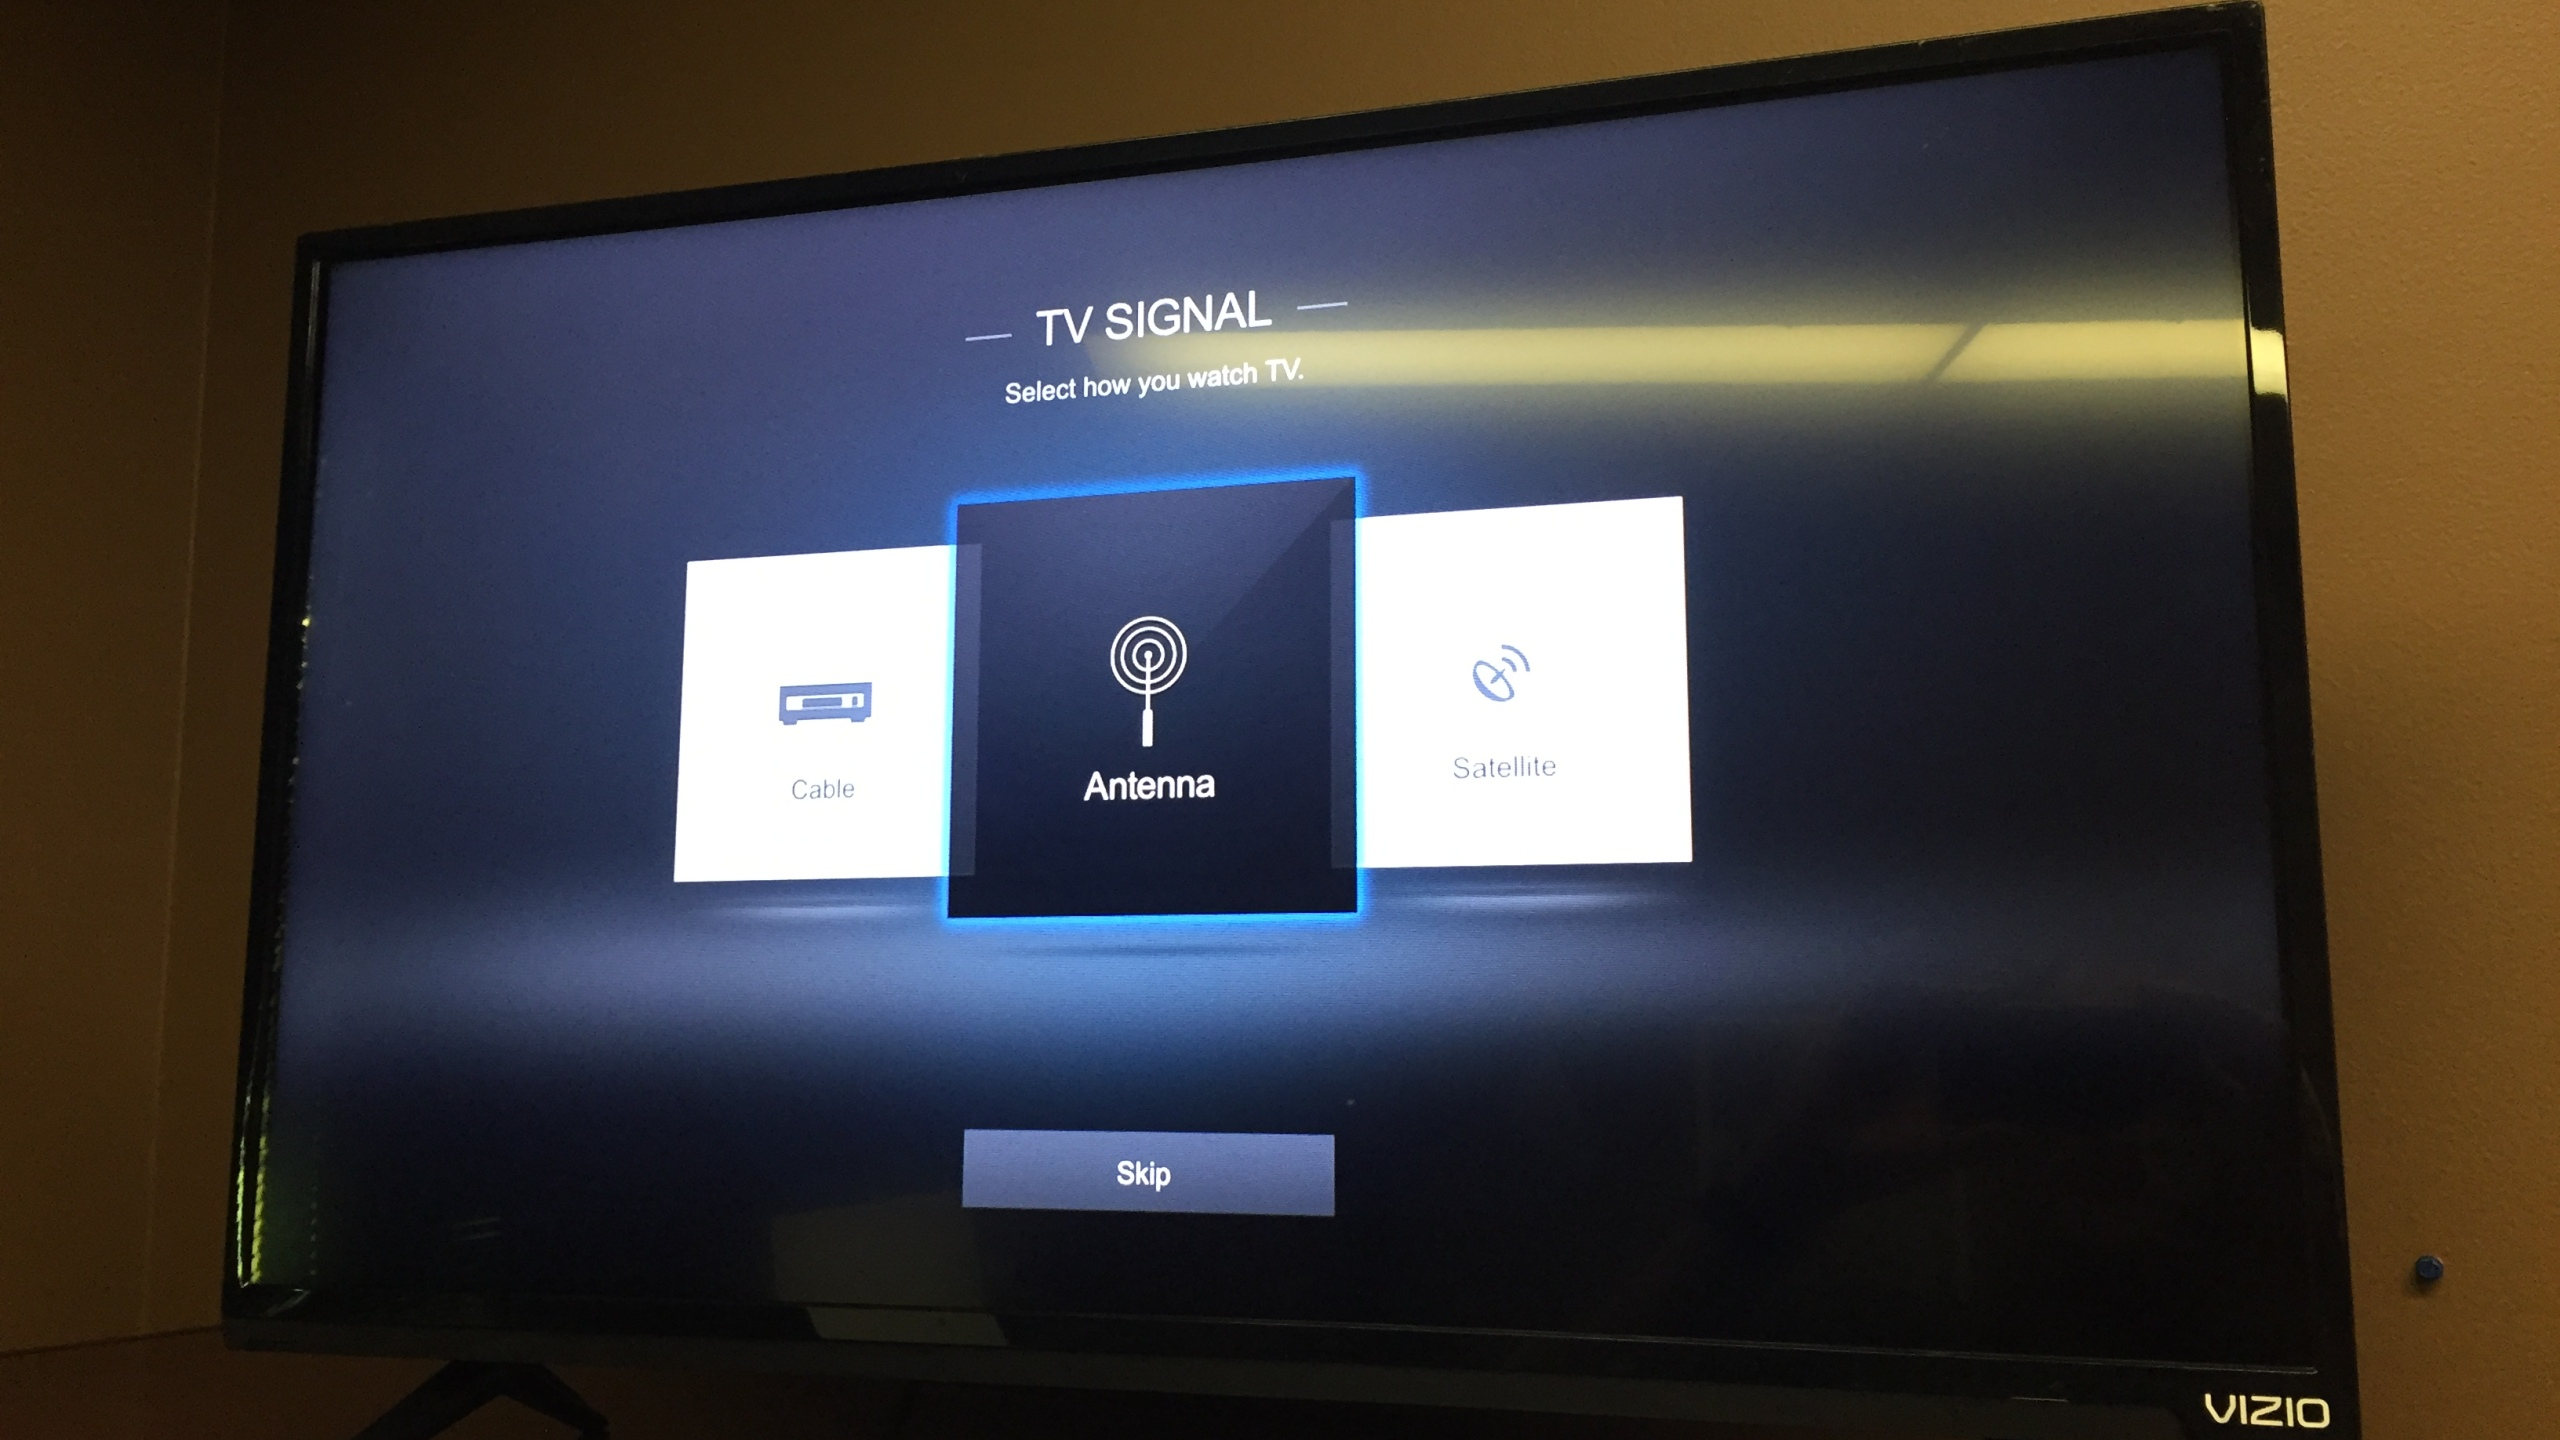 How to Scan/Rescan For Channels on Your Antenna